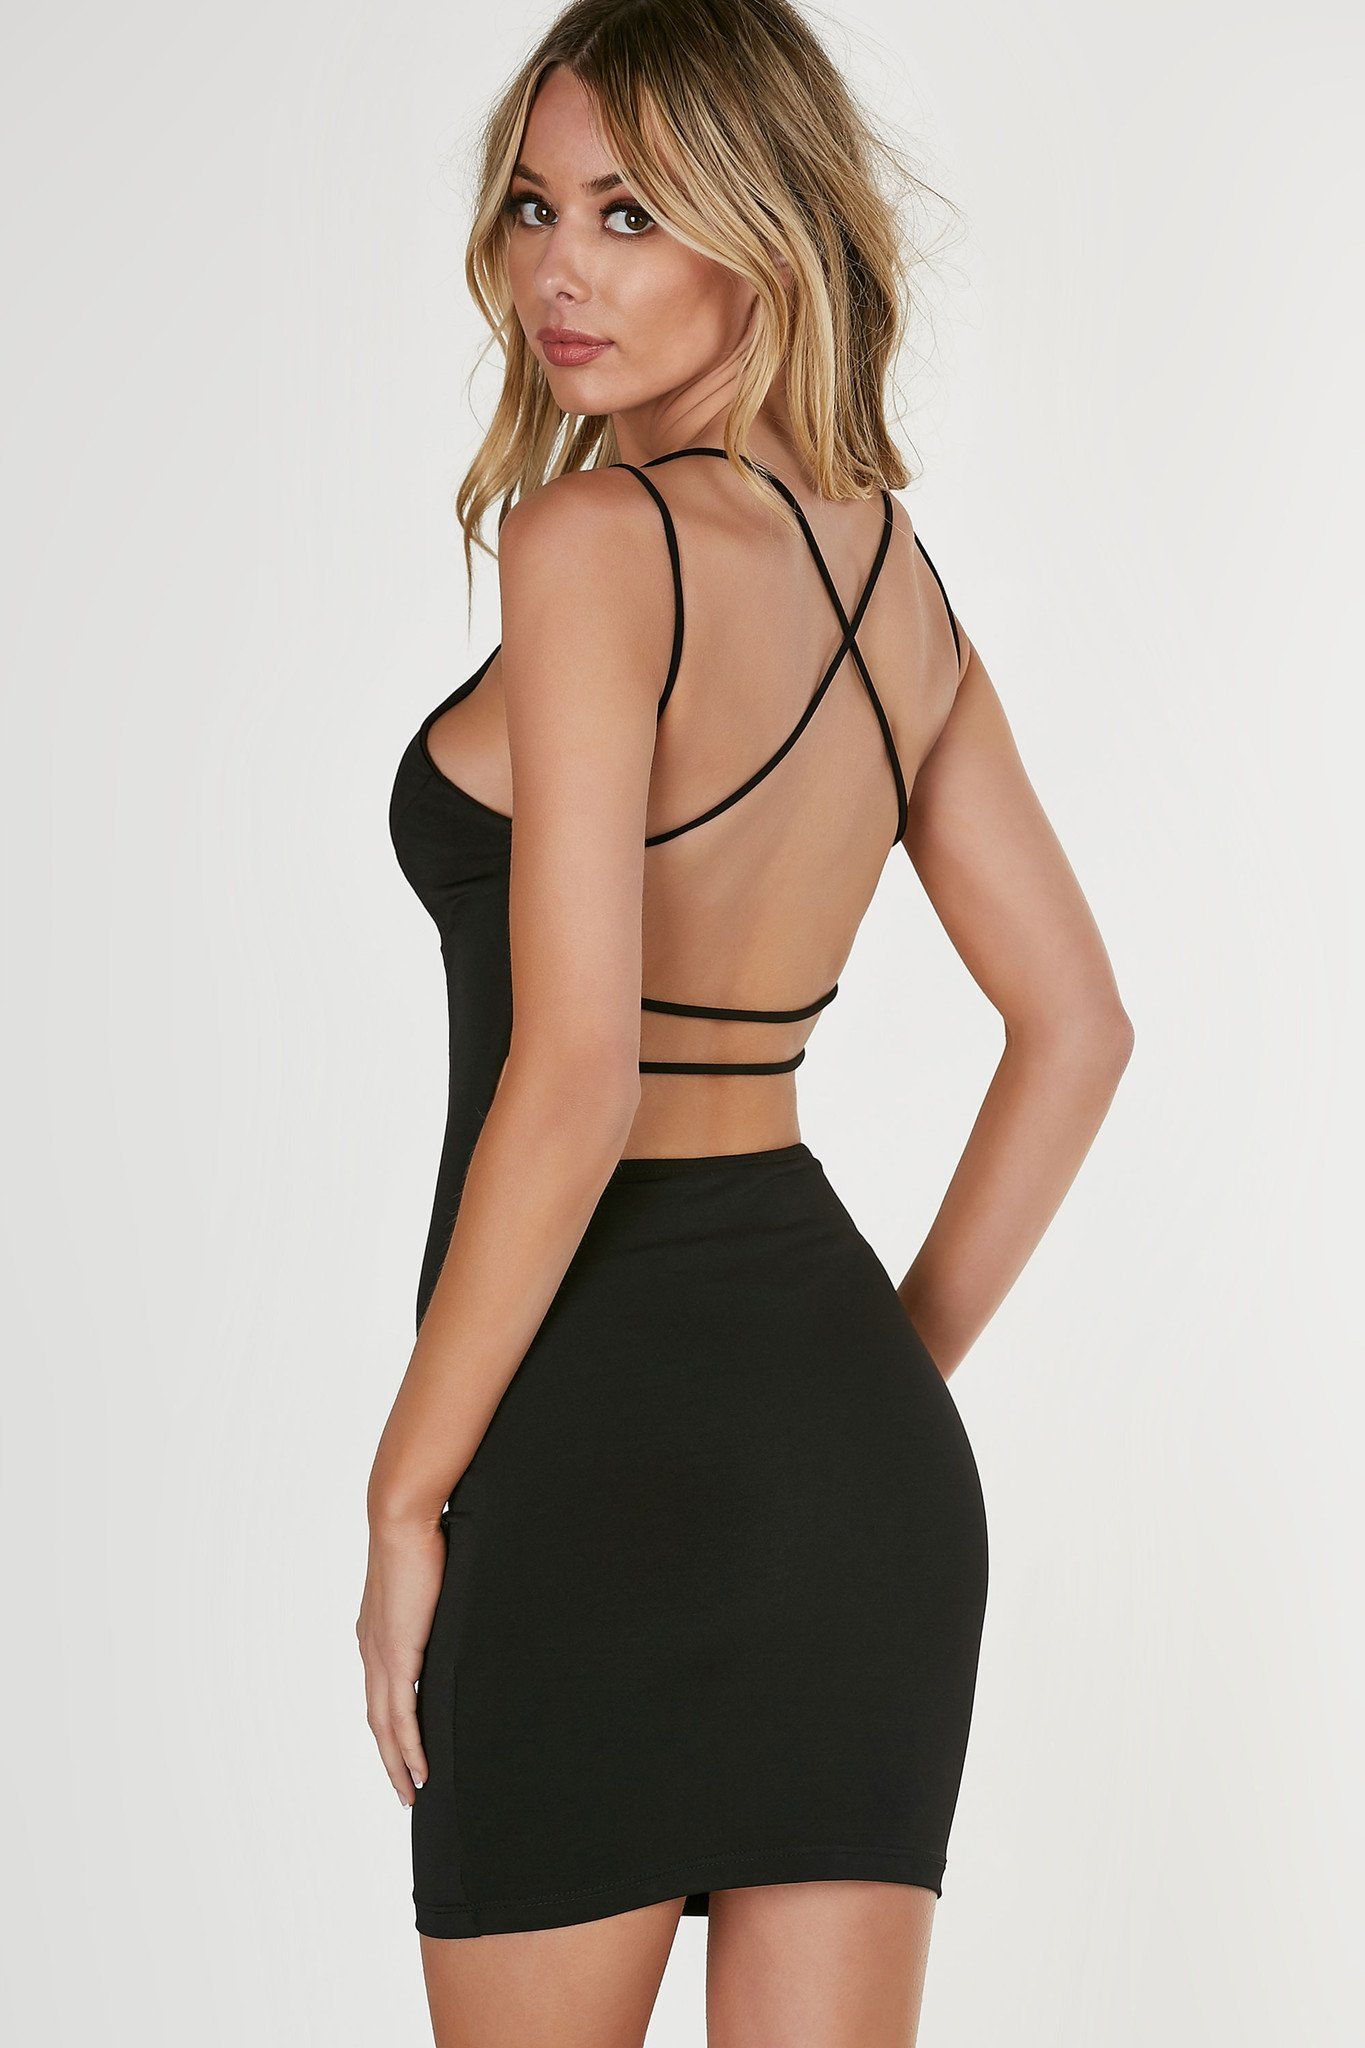 What to wear over a sleeveless dress to a wedding  Vneck sleeveless dress with strappy detailing and open back Form